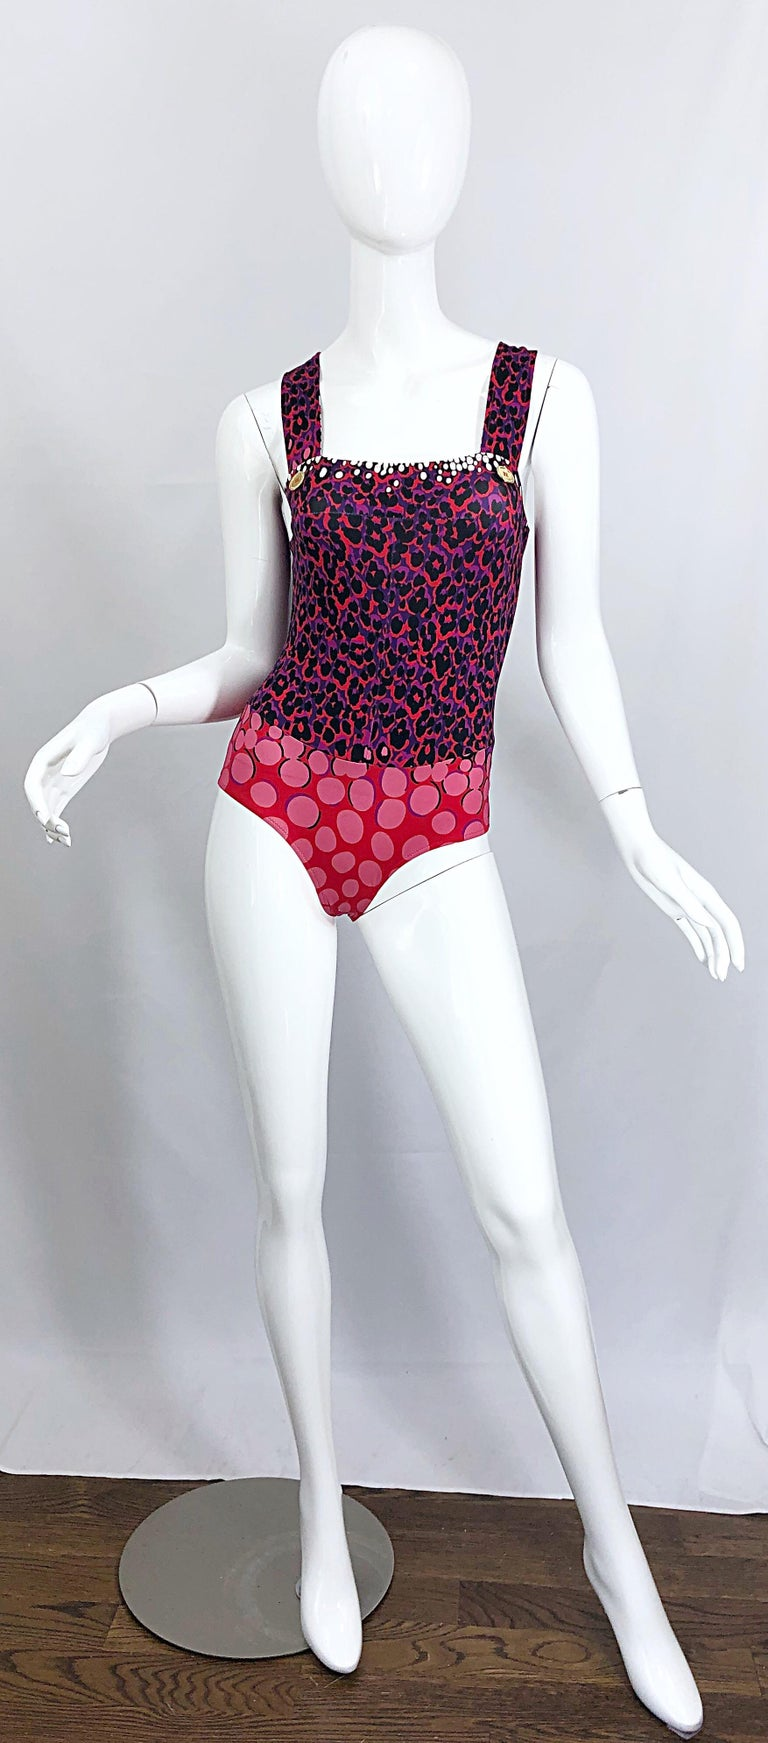 Sexy new YVES SAINT LAURENT purple and red leopard print and polka dot one piece swimsuit or bodysuit! Features a leopard print on the bodice and abstract polka dots on the bottom. Two gold buttons at each strap. Great for the beach, pool, yacht.